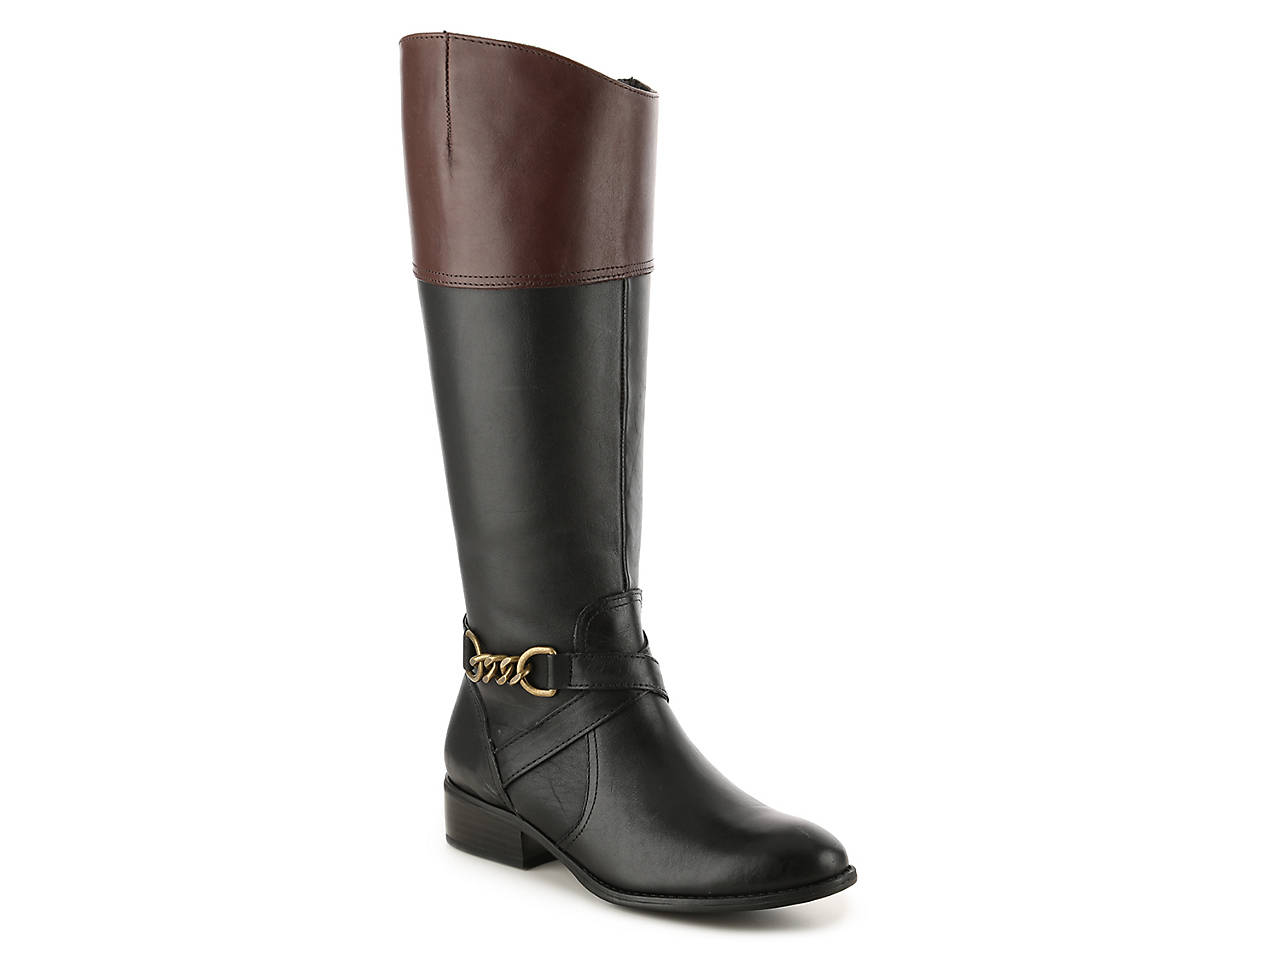 Online shopping for Clothing, Shoes & Jewelry from a great selection of Ankle & Bootie, Mid-Calf, Knee-High, Over-the-Knee, Boots & more at everyday low prices.